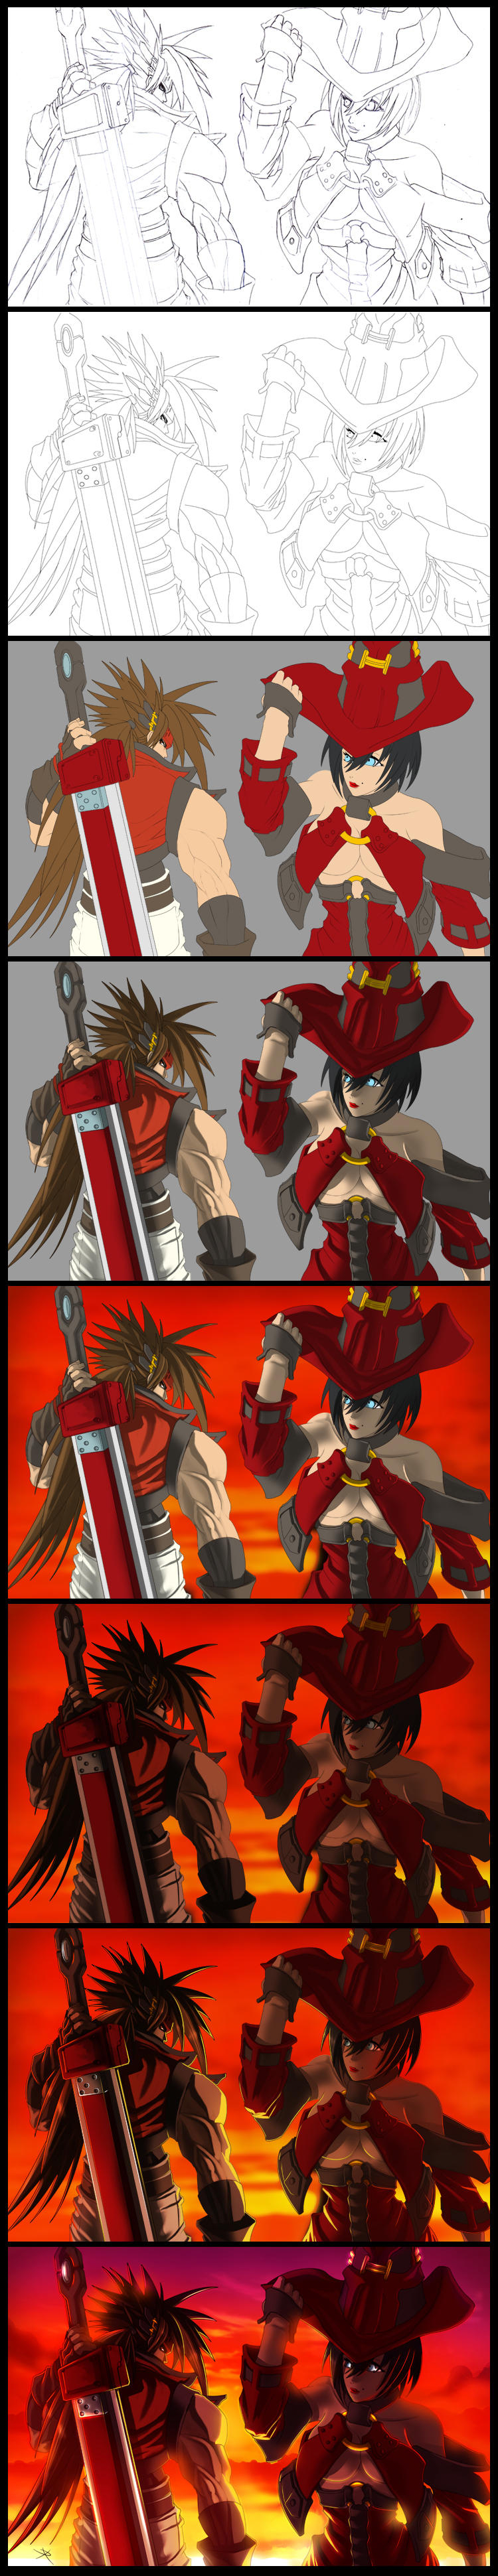 Guilty Gear Sunset Process by digitalninja